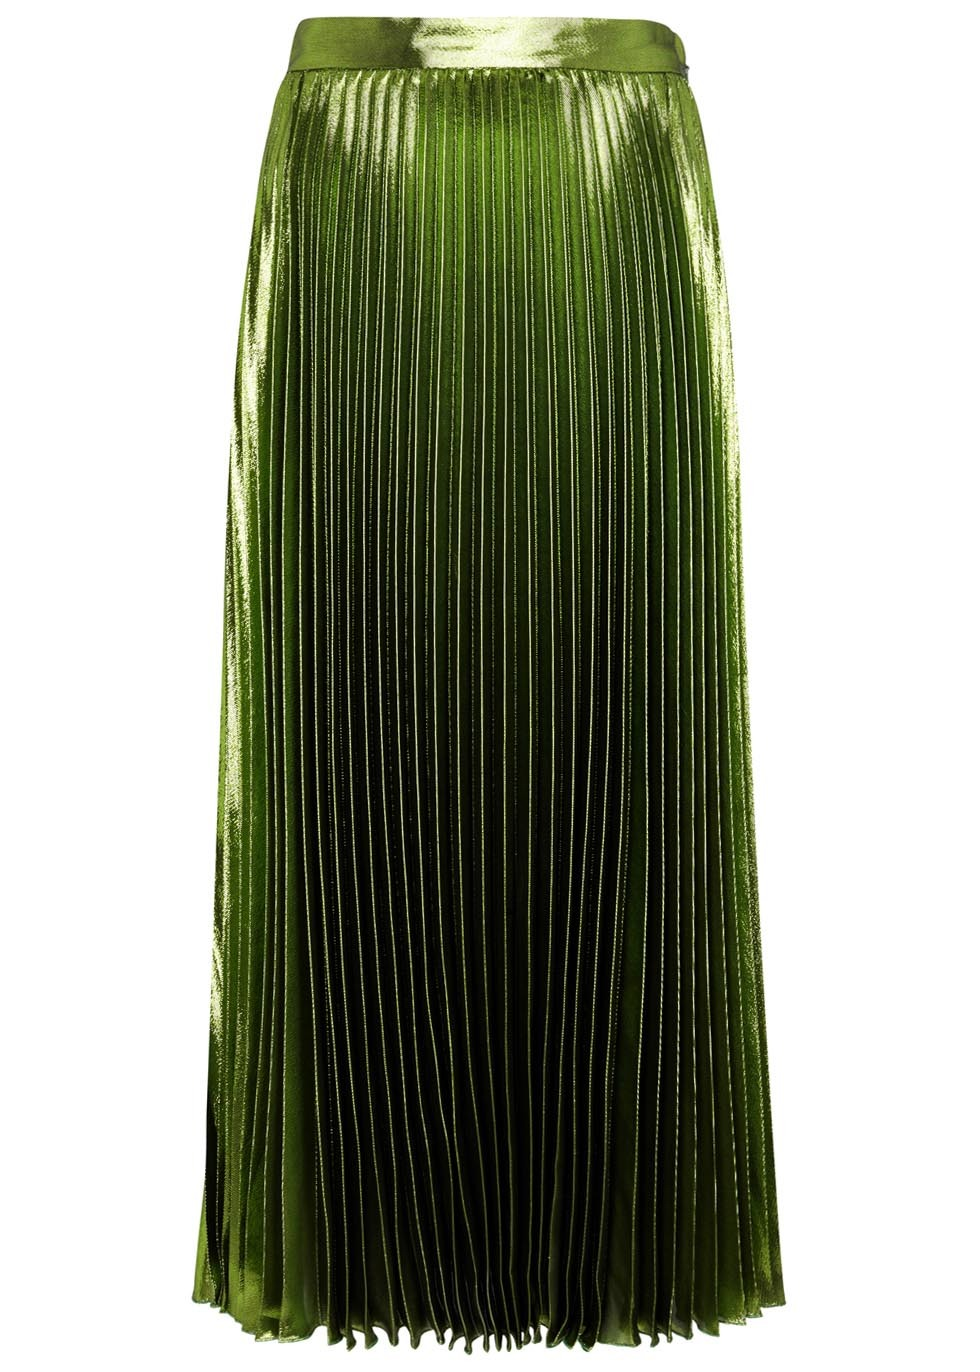 Green Silk Blend Lamé Skirt - pattern: plain; length: ankle length; fit: body skimming; style: pleated; waist: mid/regular rise; predominant colour: dark green; occasions: evening; fibres: silk - mix; texture group: silky - light; pattern type: fabric; season: s/s 2016